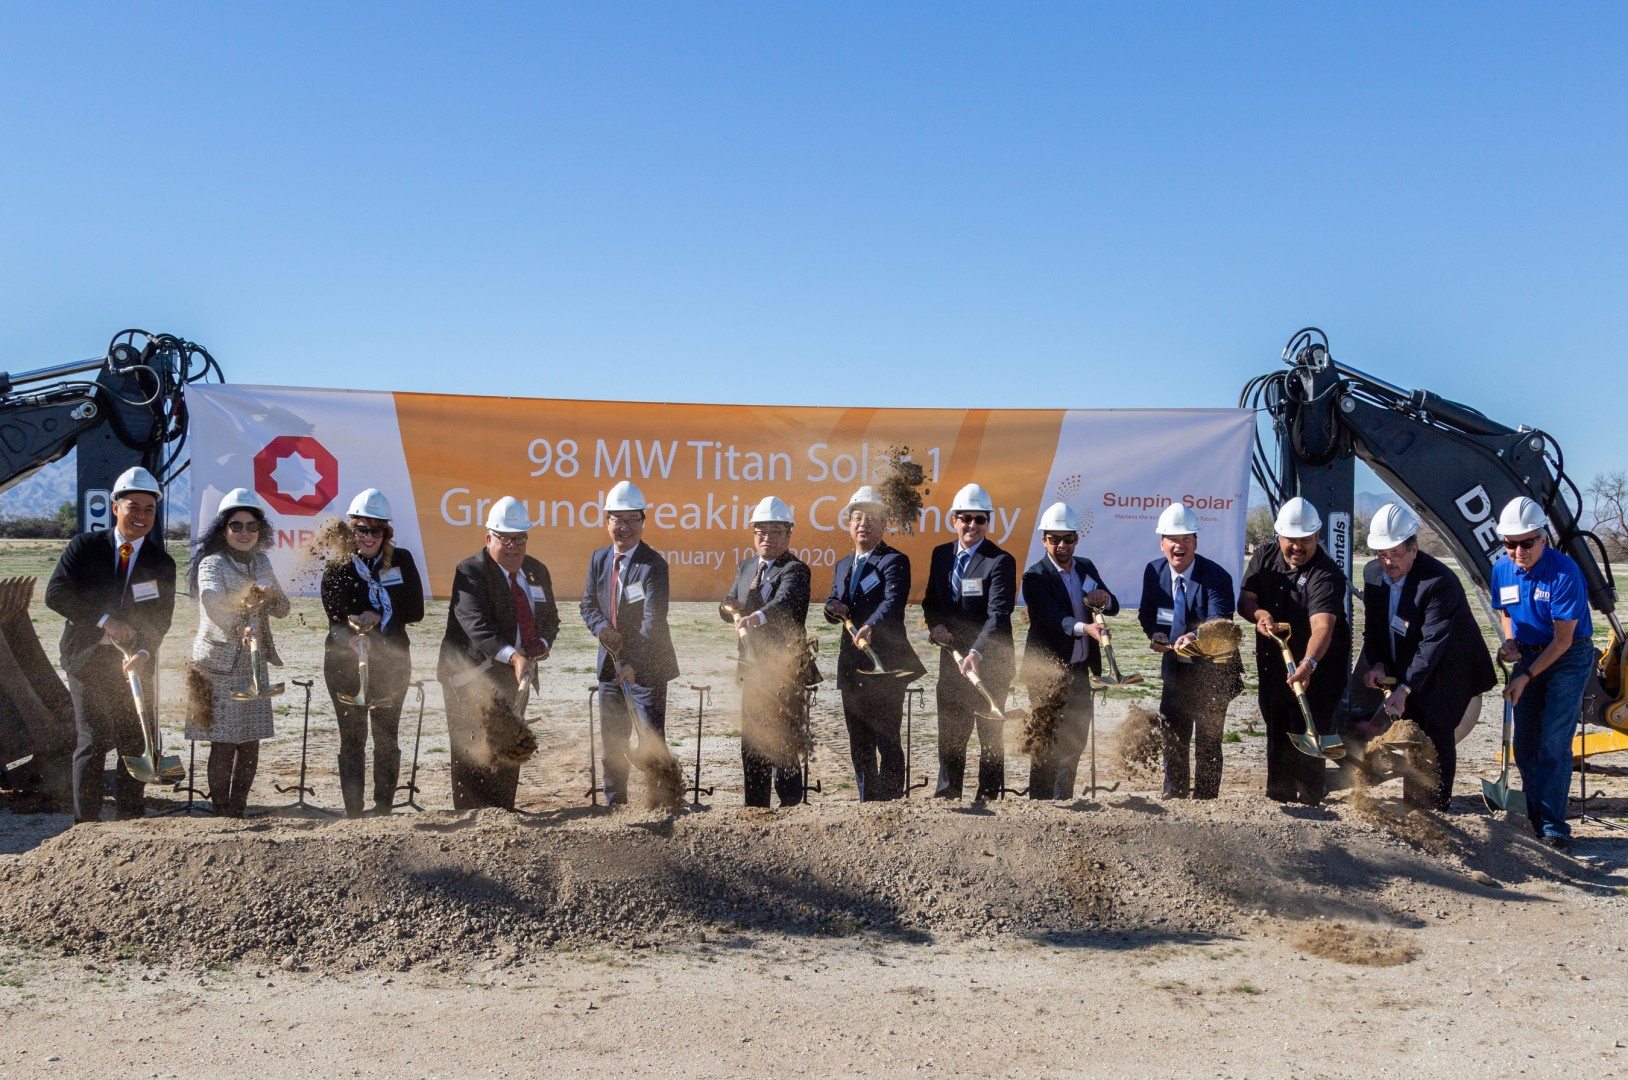 This stands as Sunpin Solar's second large utility-scale solar project in California, following the completion of the 96.75MW ColGreen North Shore installation in Riverside County, California in 2018. Image: Sunpin Solar